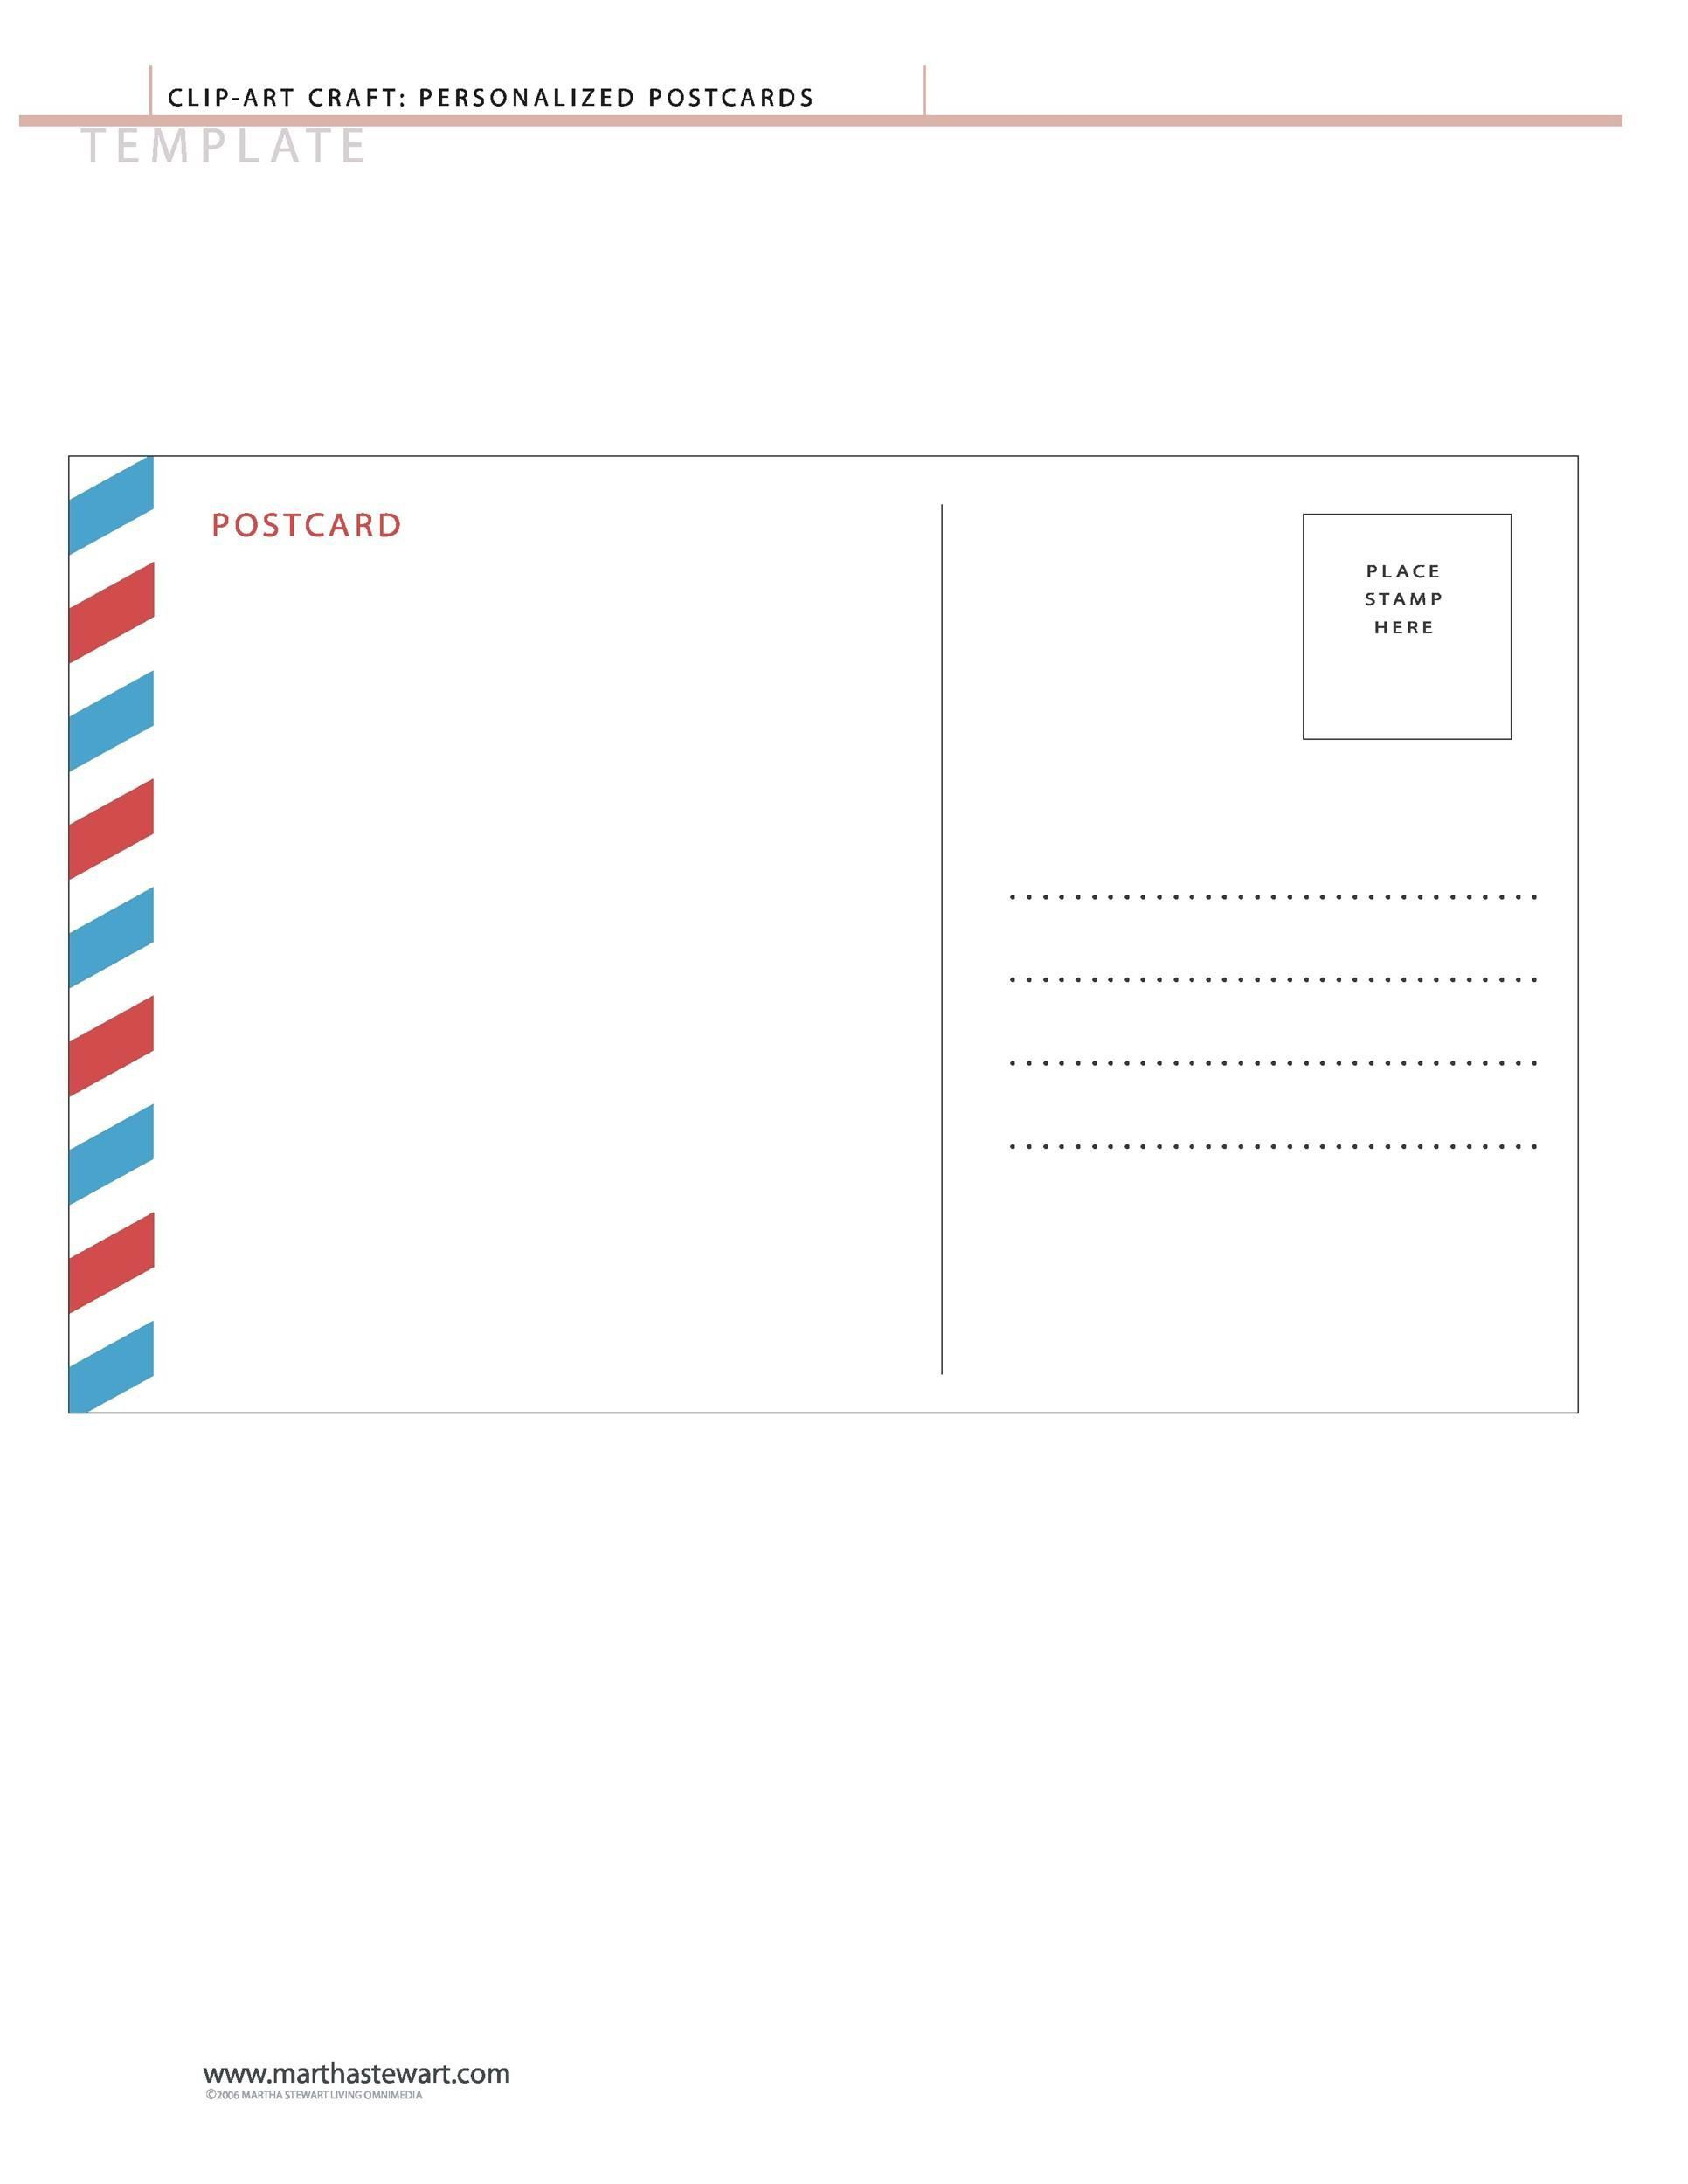 004 Top Postcard Layout For Microsoft Word Highest Quality  4 TemplateFull